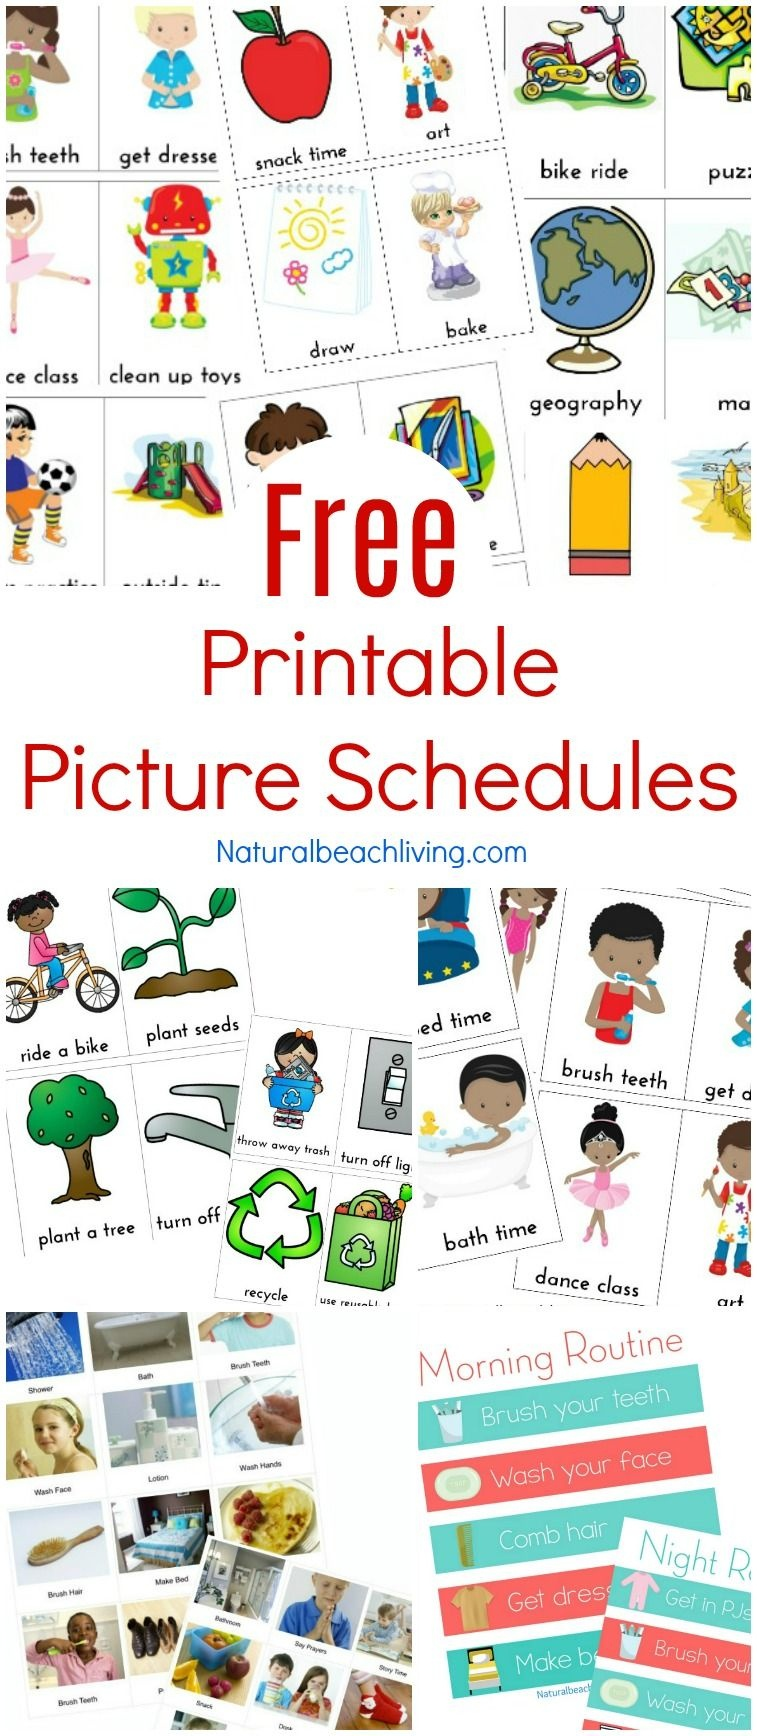 Free Printable Picture Schedule Cards - Visual Schedule Printables - Free Printable Picture Schedule For Preschool